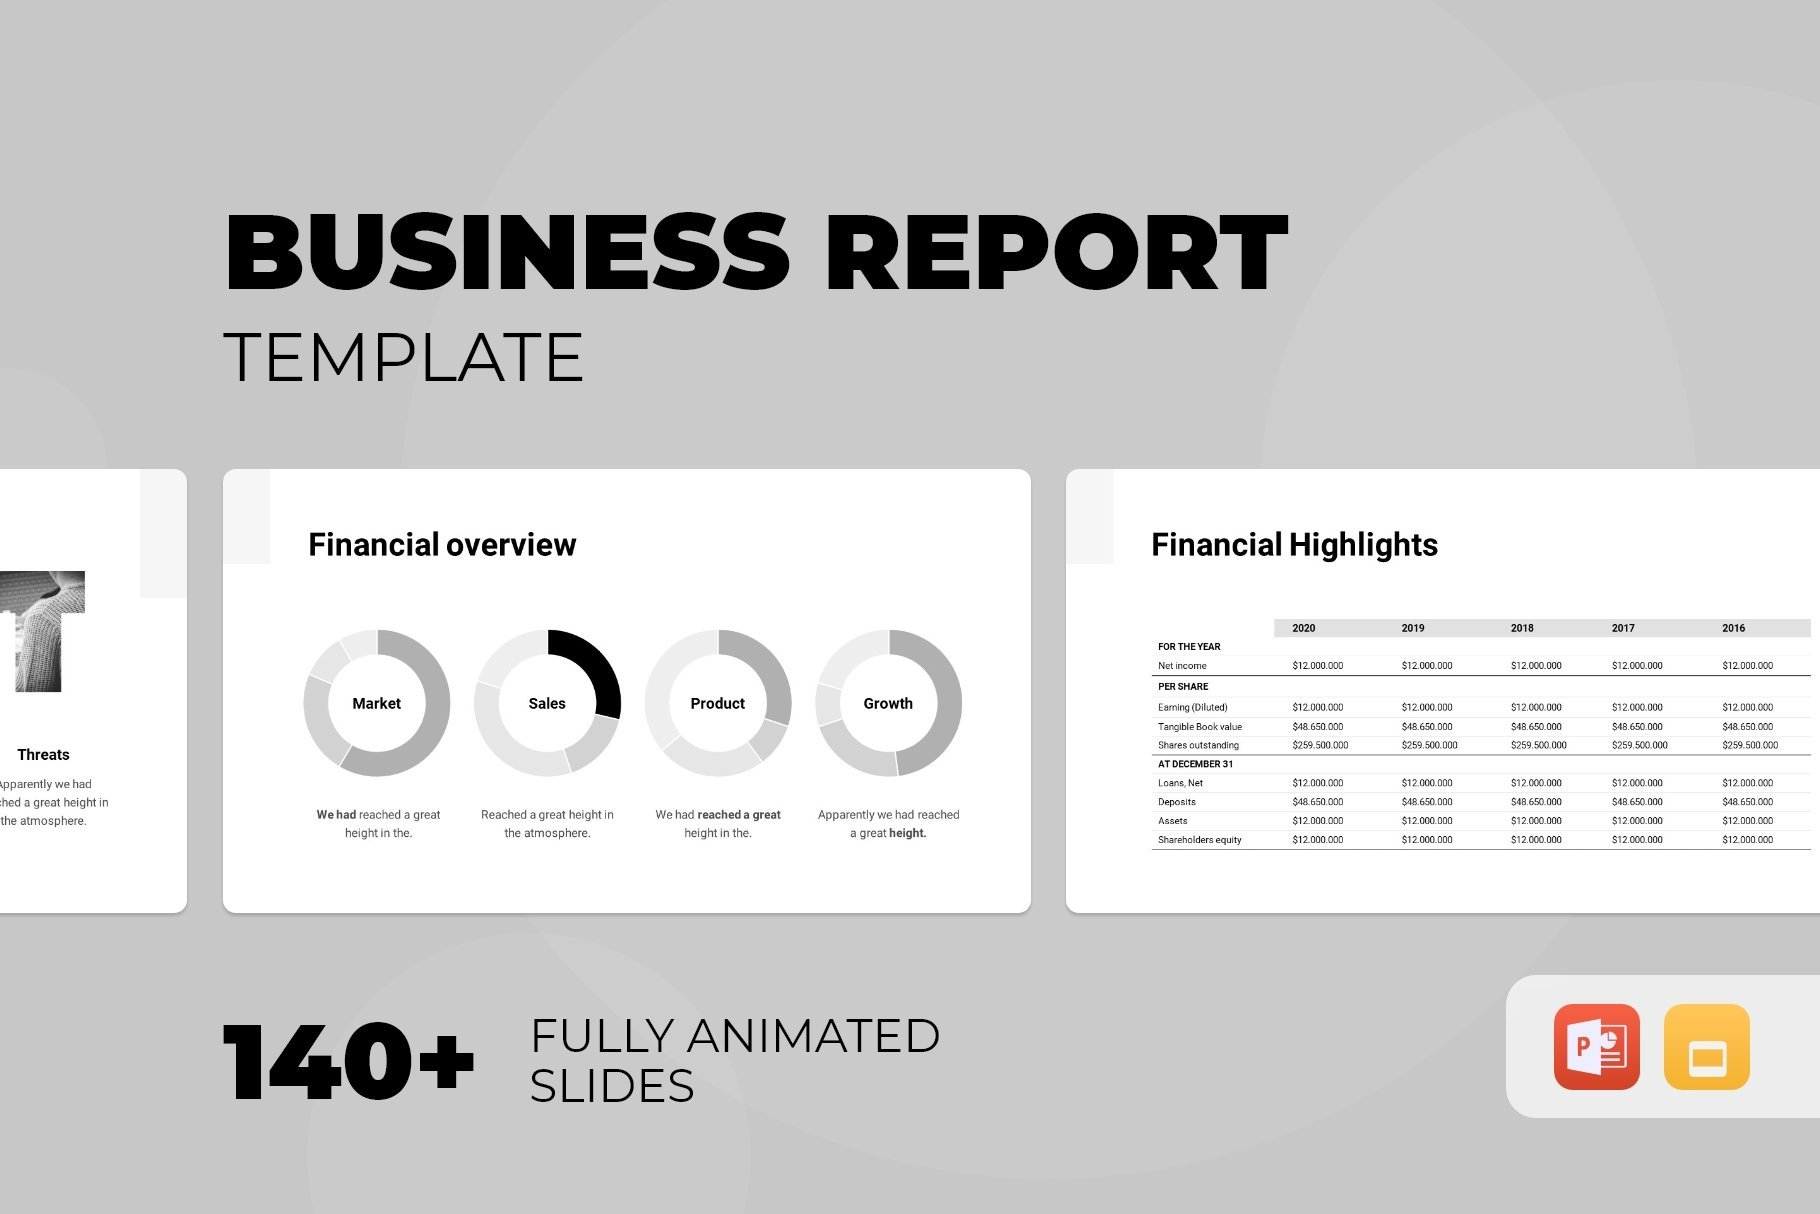 View of business report template.